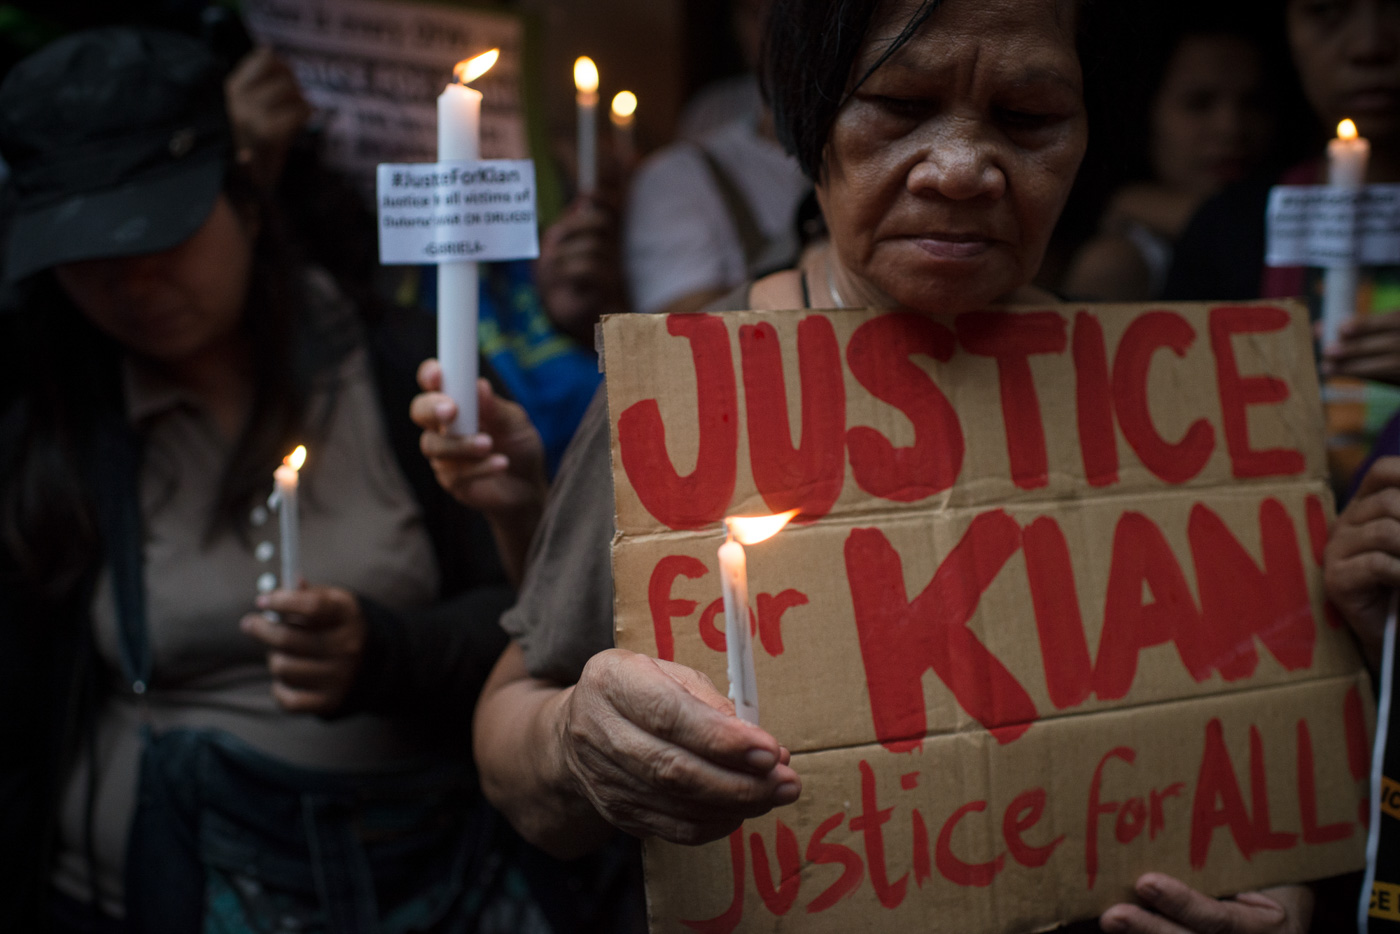 JUSTICE FOR KIAN. Protesters as well as neighbors and friends of Kian Loyd delos Santos light candles as they demand justice for the slain teenager. Photo by Eloisa Lopez/Rappler